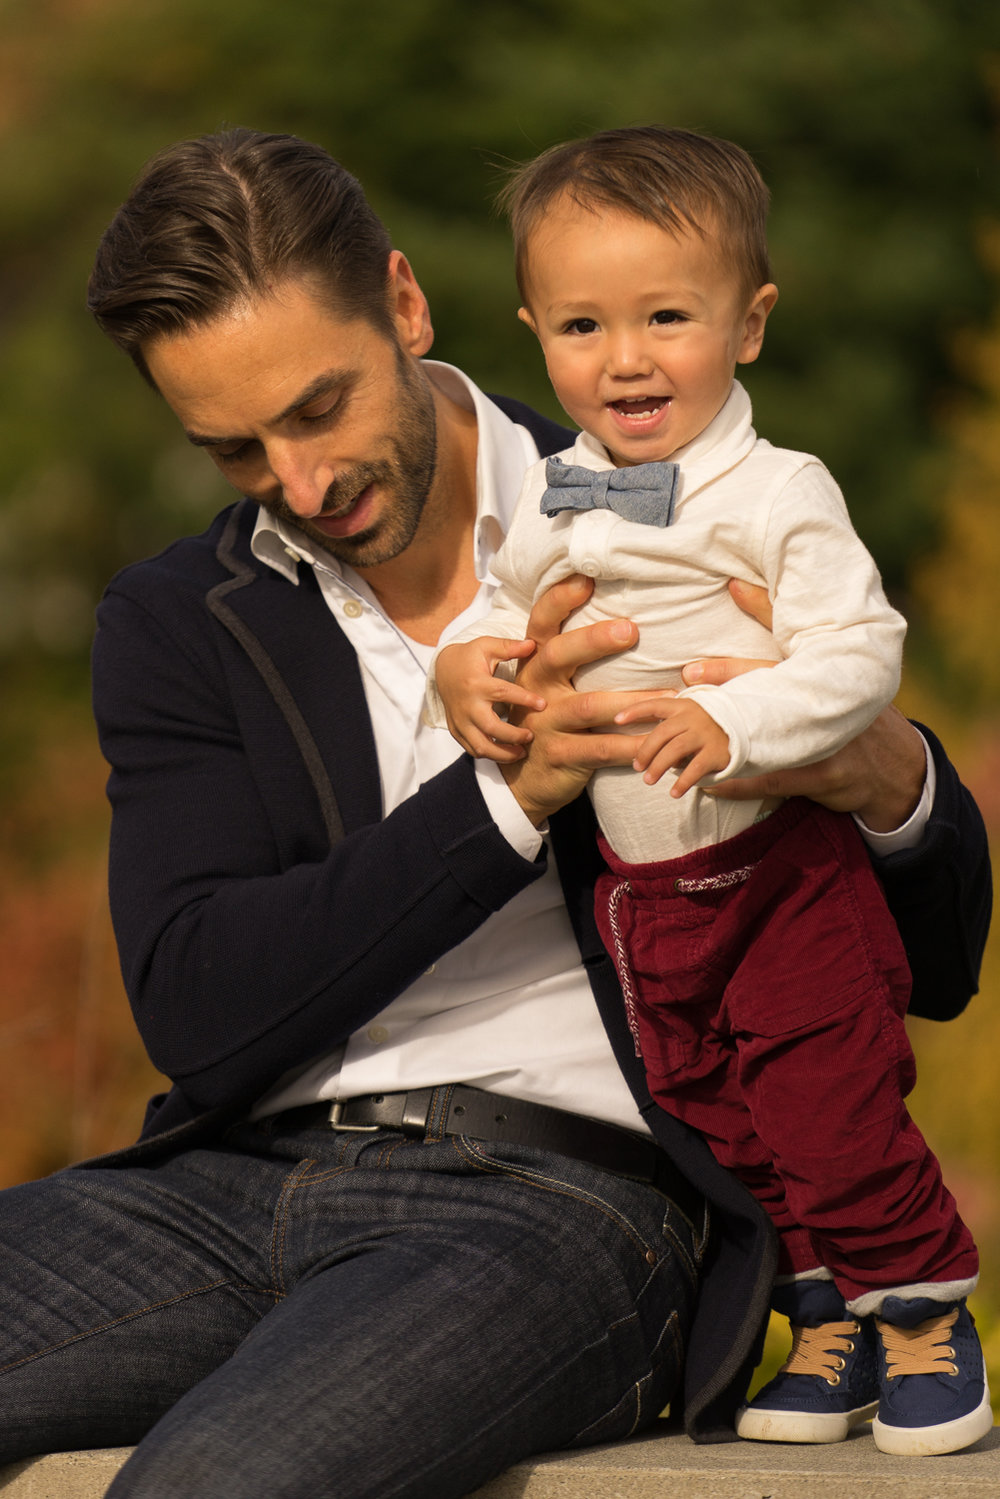 father playing with son - SF East Bay lifestyle photography